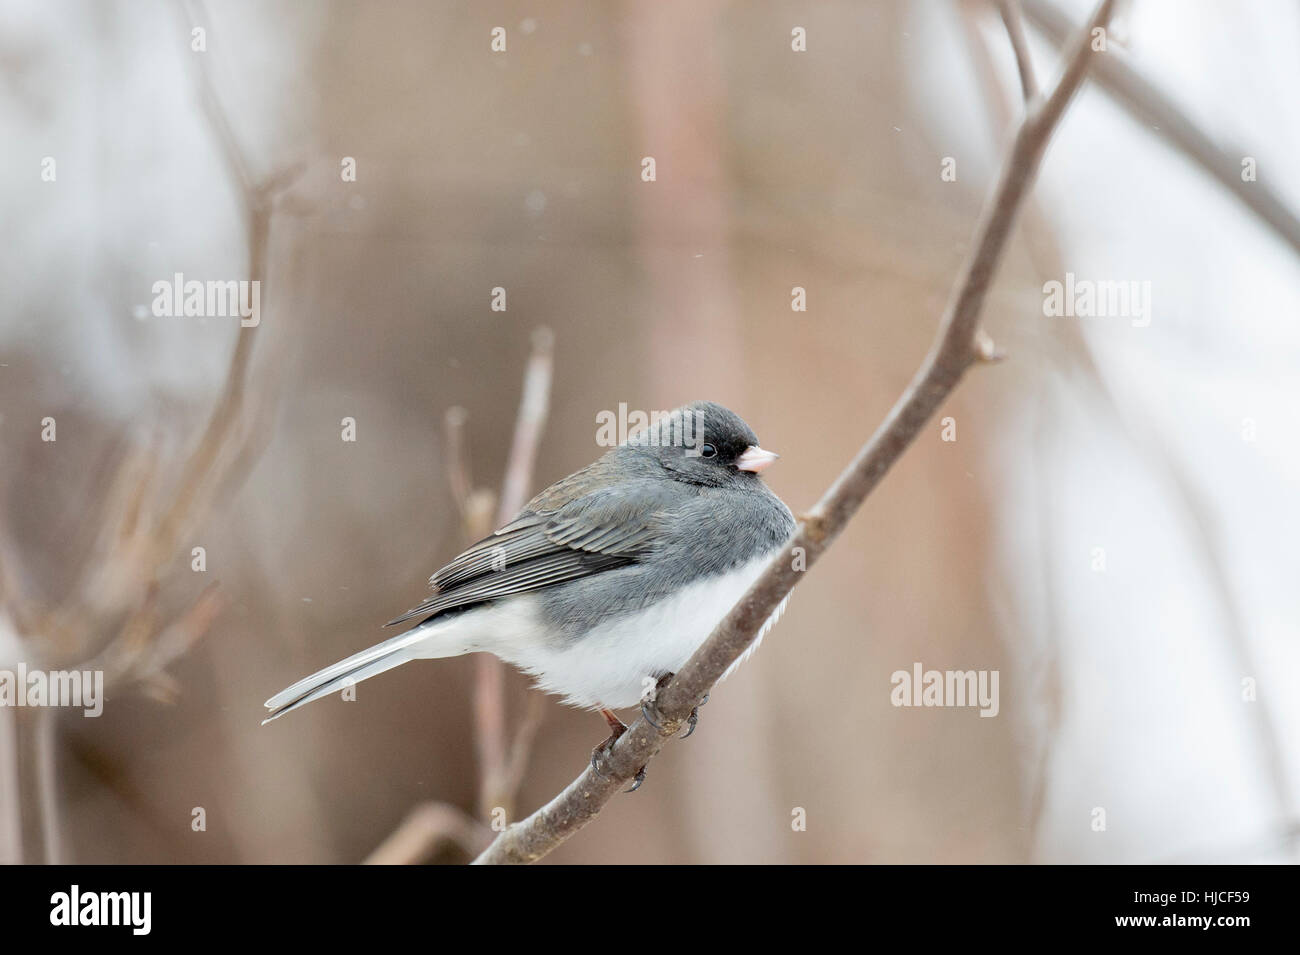 A Dark-eyed Junco perches on a branch during a light snowfall. Stock Photo